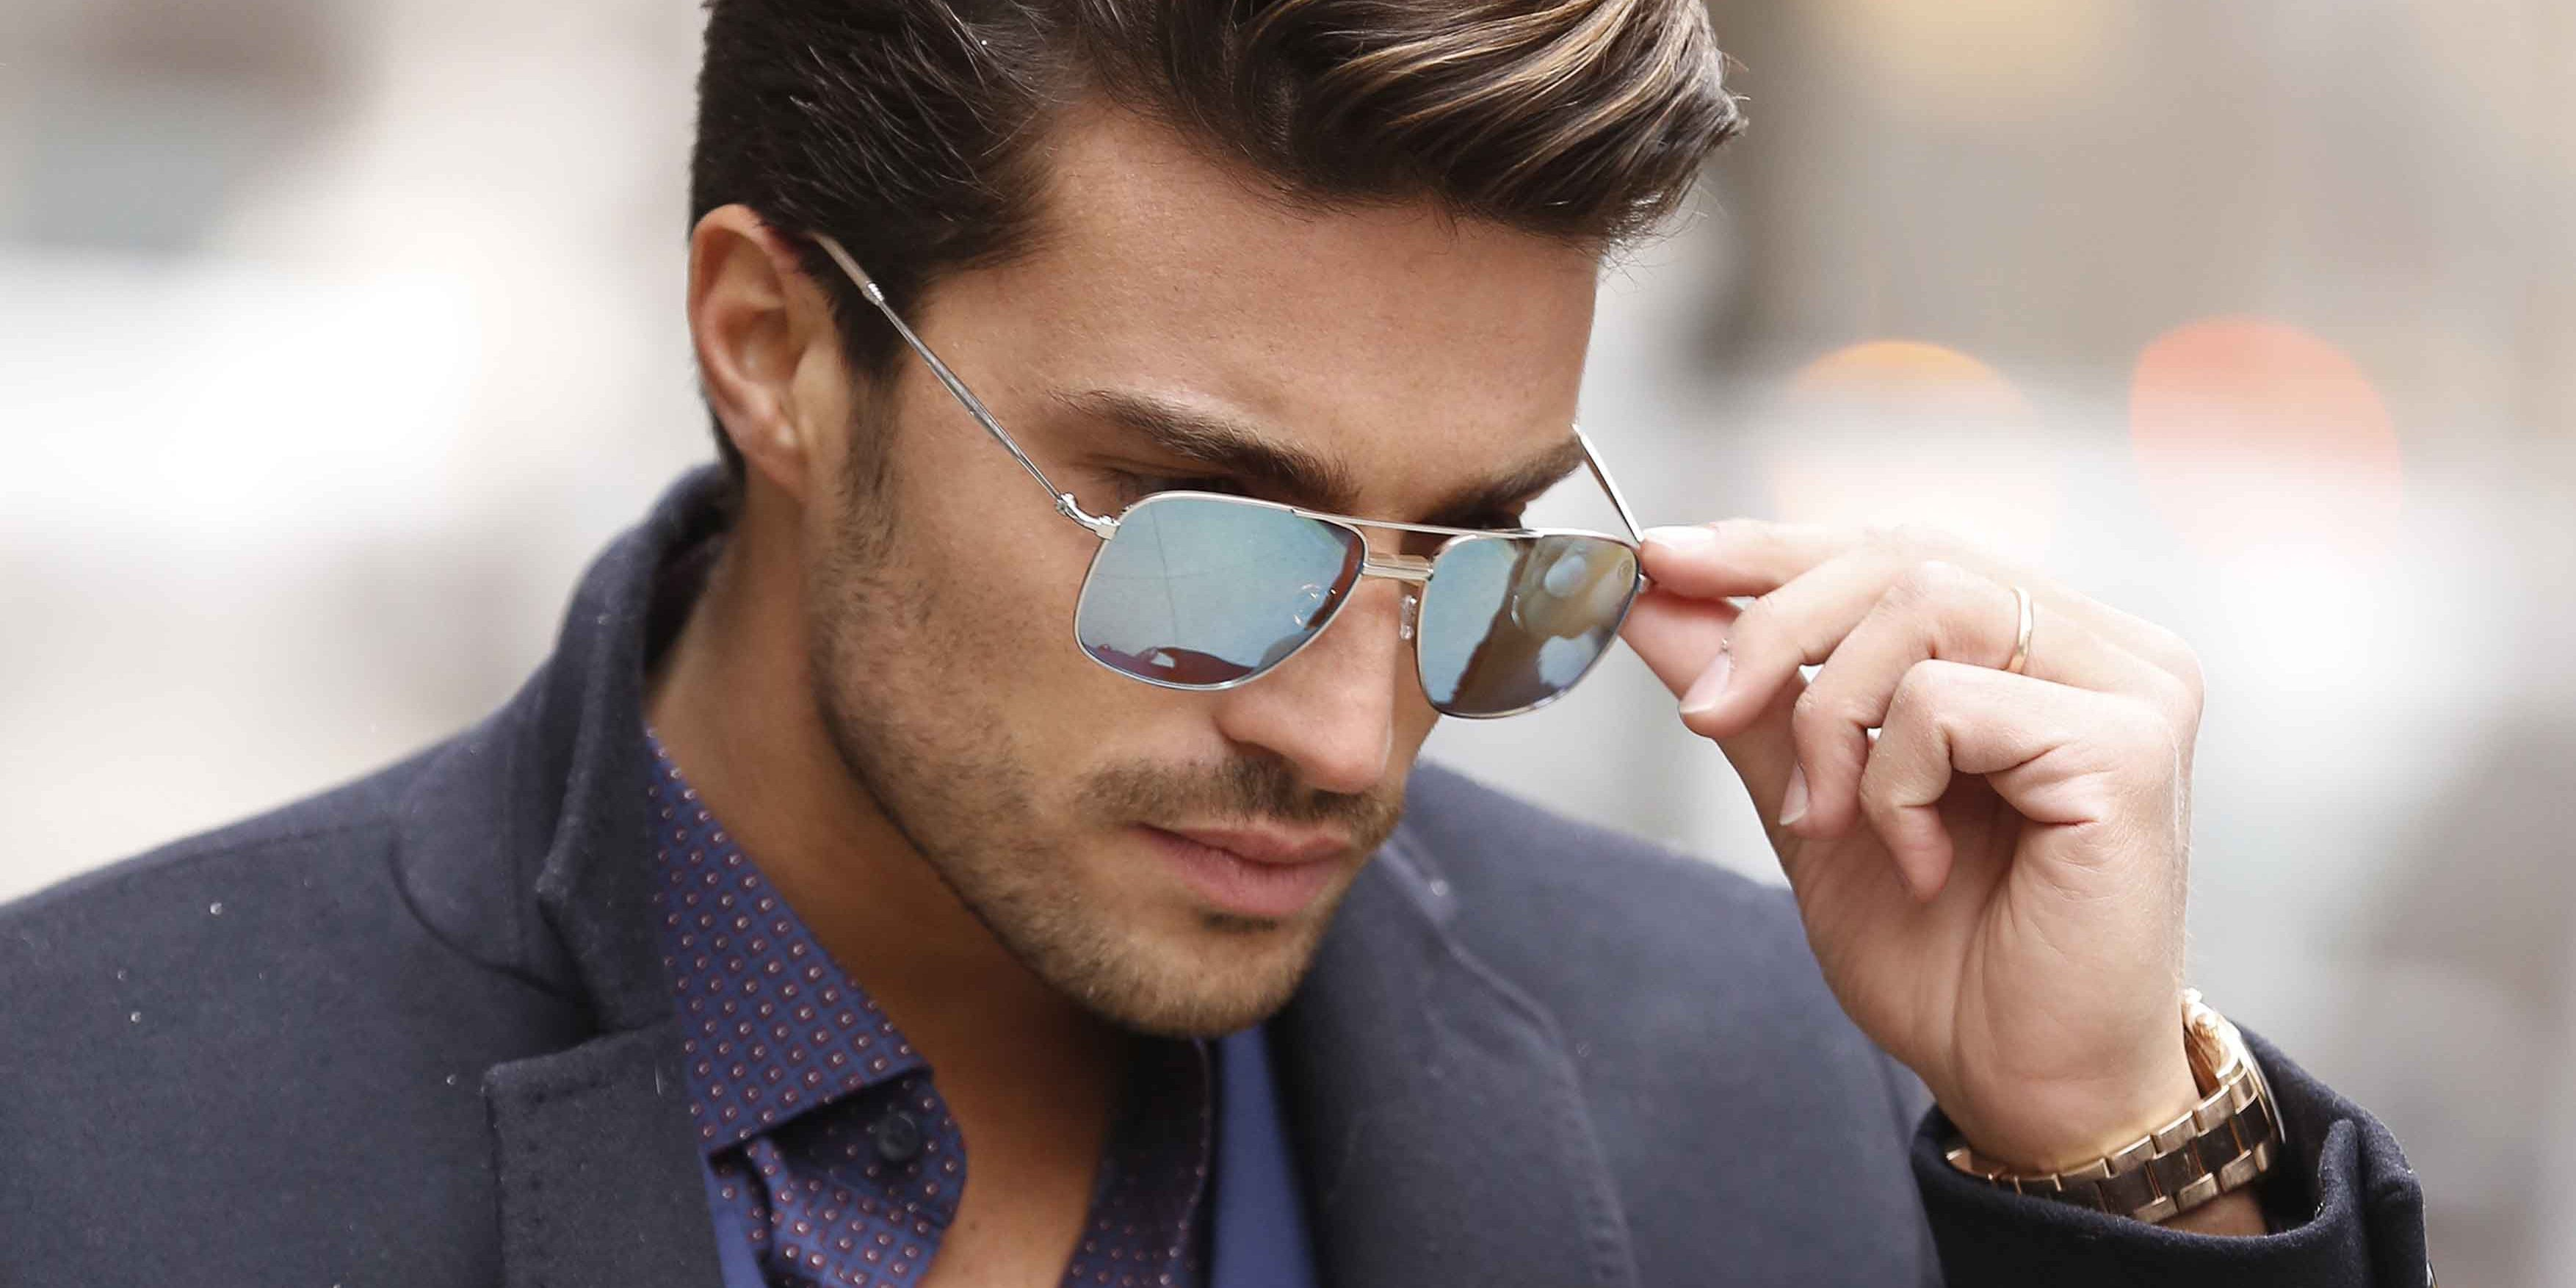 MIDO 2016 MARIANO DI VAIO FOR HALLYampSON